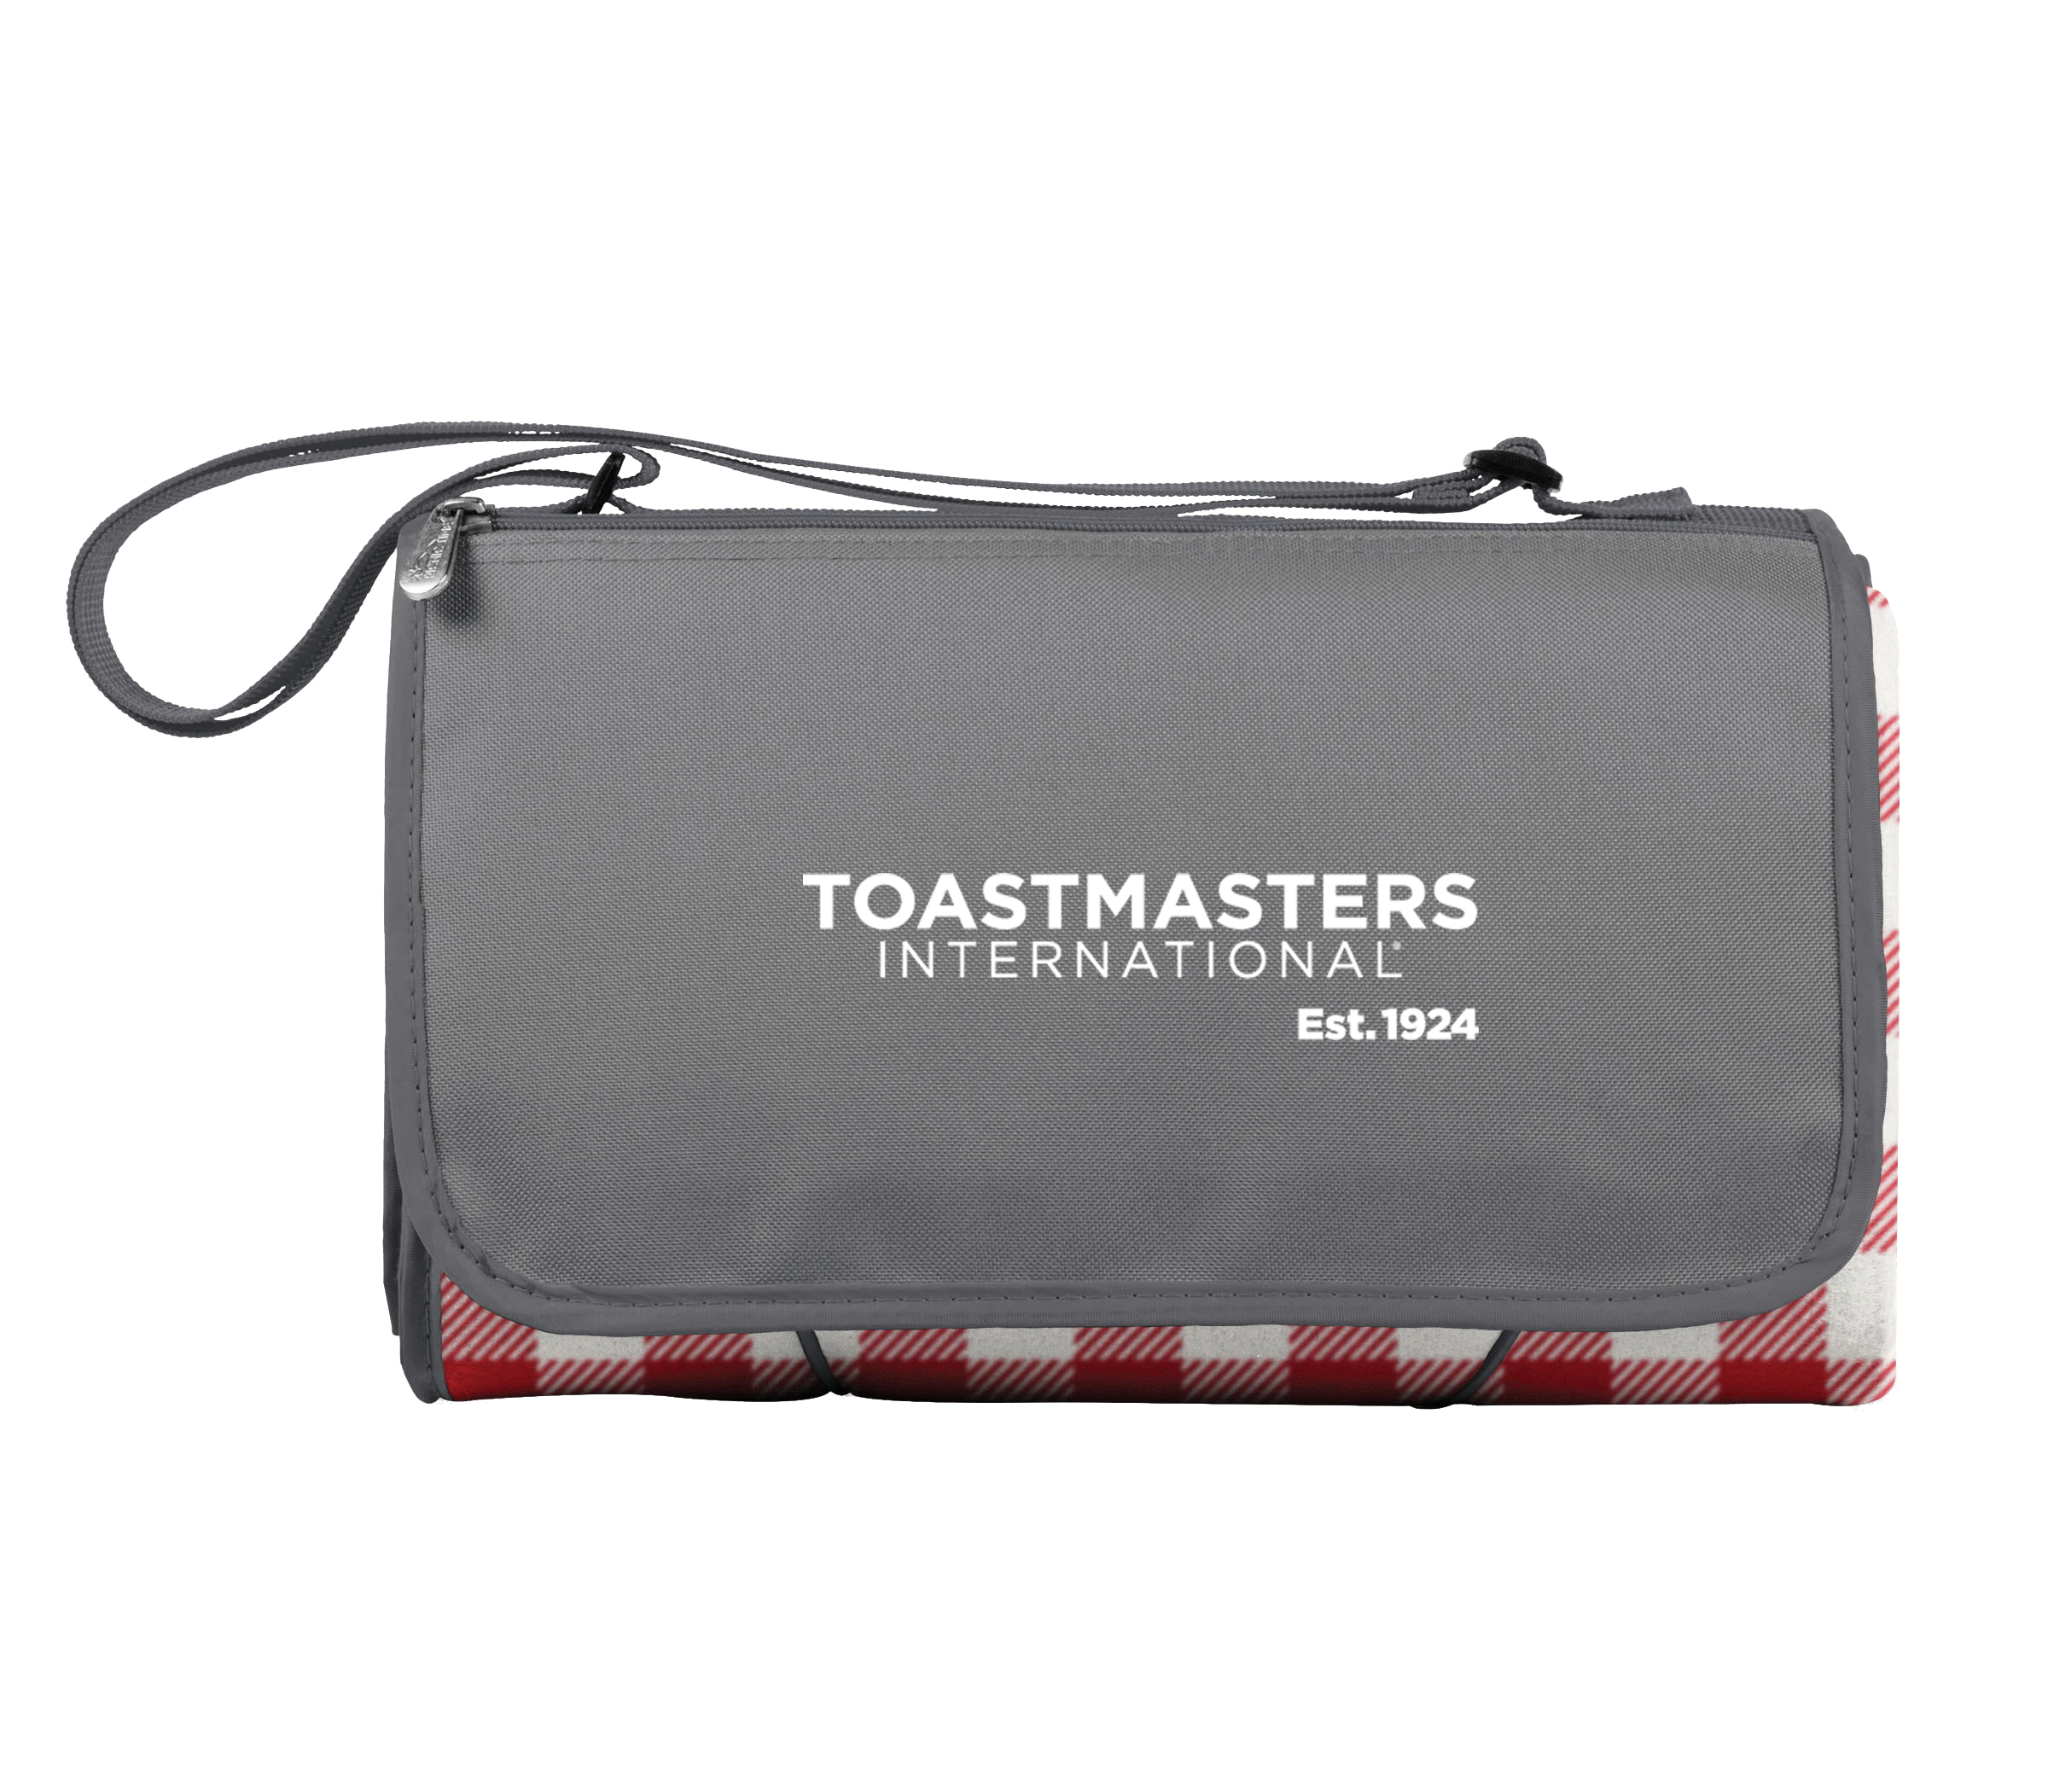 Picnic-Blanket-Tote-Toastmasters